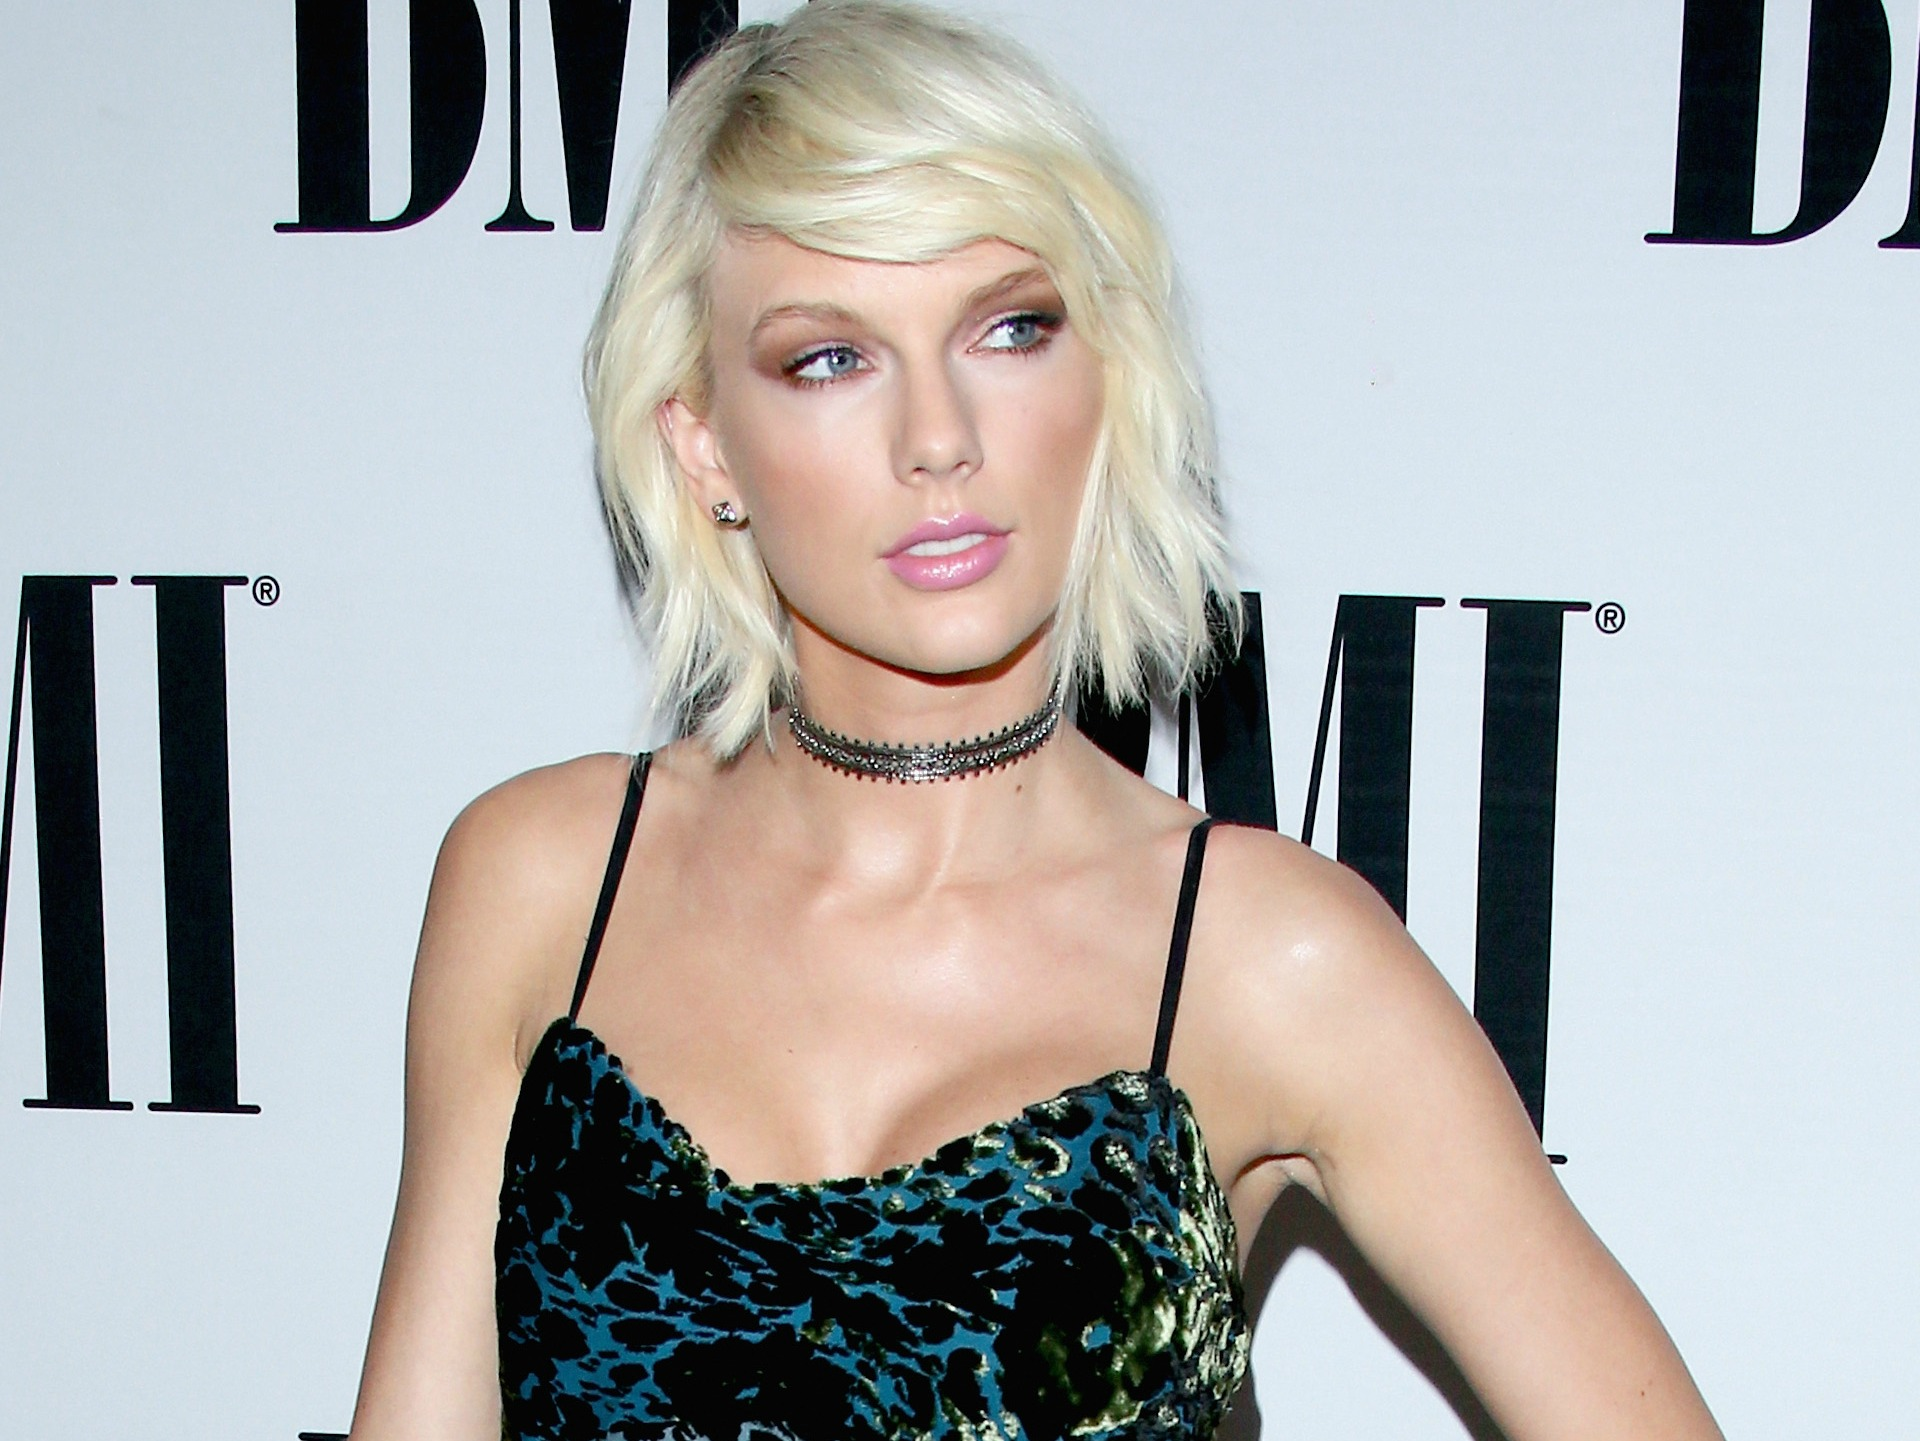 Taylor Swift Just Made Her Boldest Political Statement Yet On Instagram